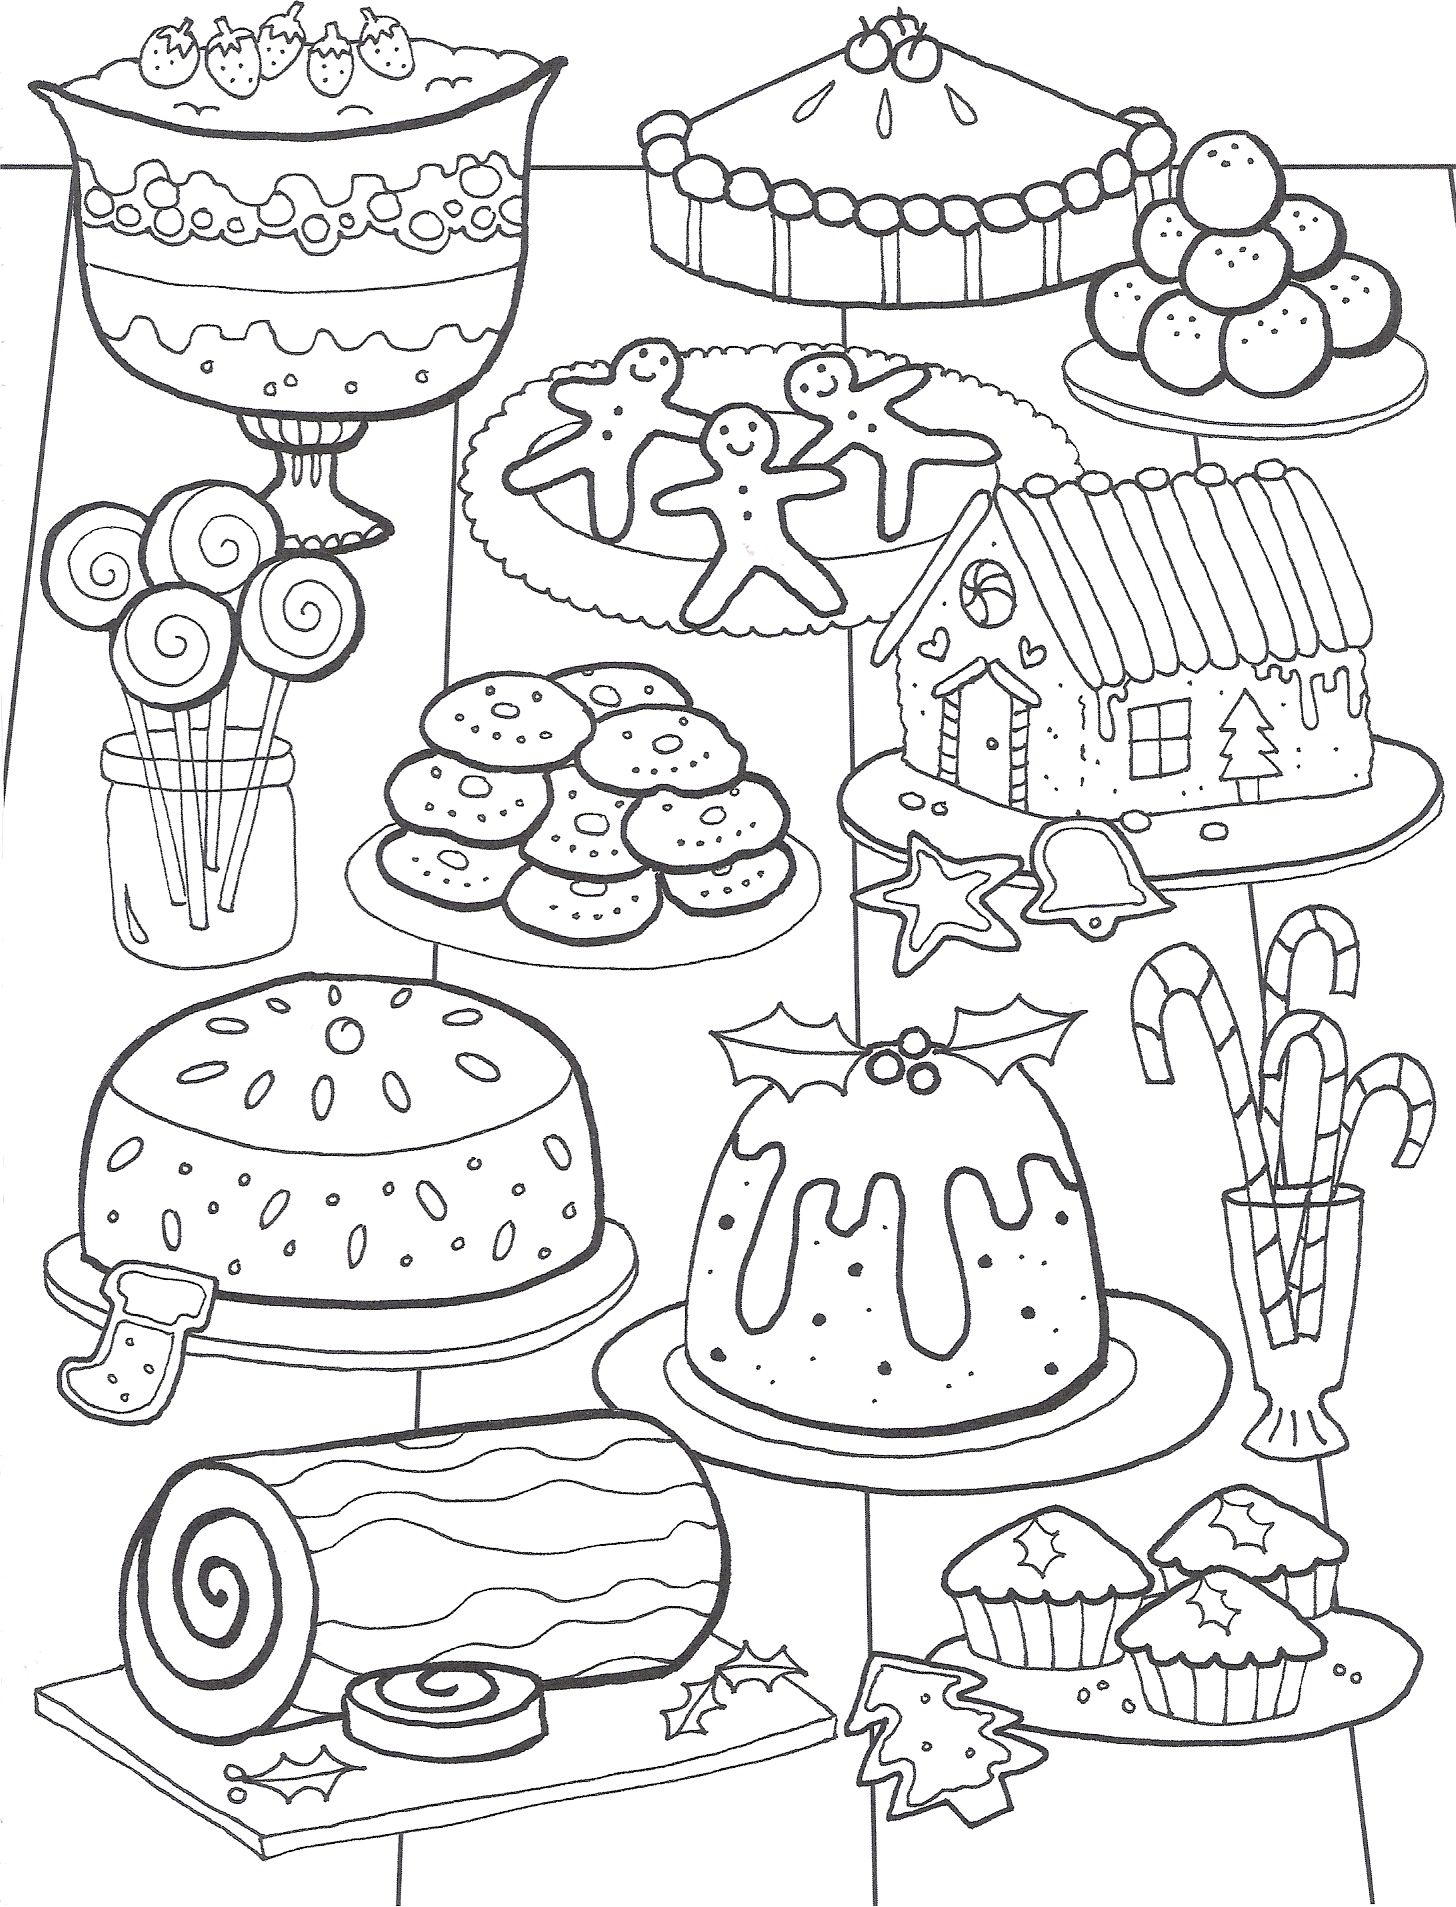 - Pin By Tana Herrlein On Coloring Pages - Food Stuffs Food